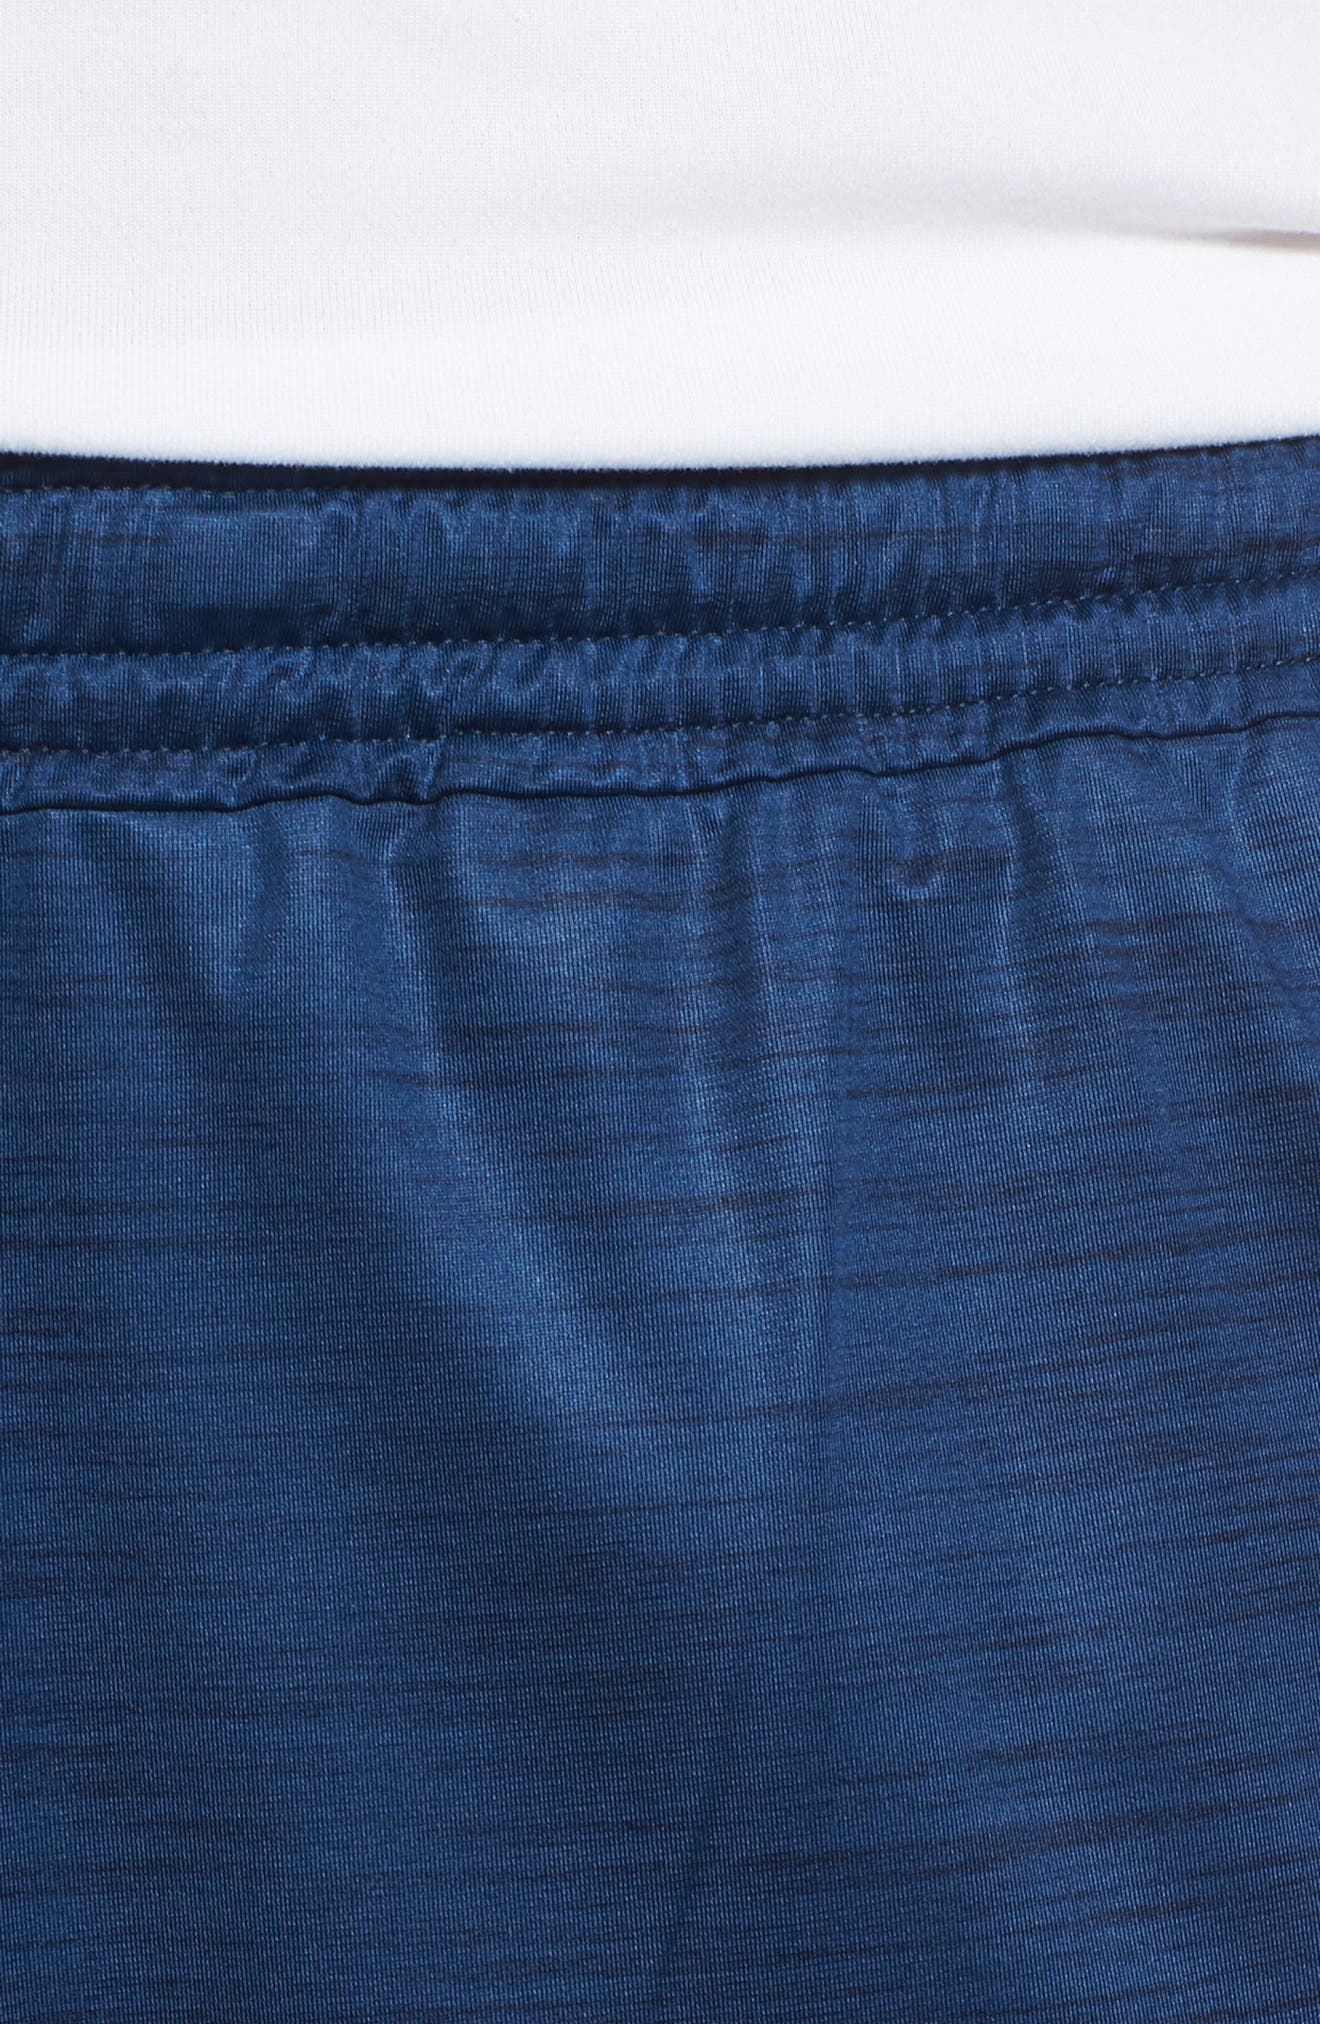 MK1 Twist Shorts,                             Alternate thumbnail 4, color,                             Academy/ Stealth Greh